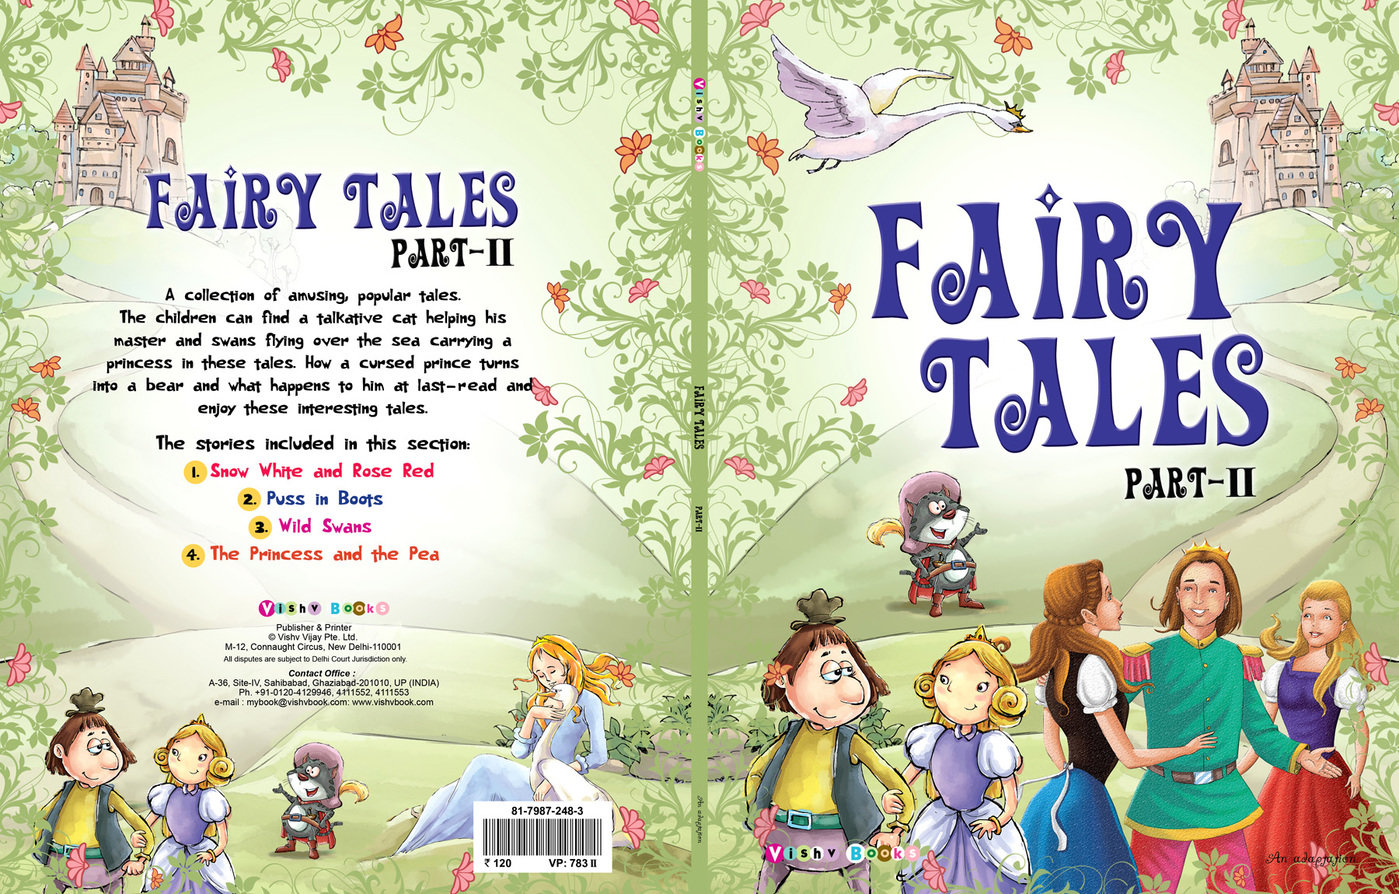 Children S Book Front And Back Cover : Children book cover by devesh sharma at coroflot